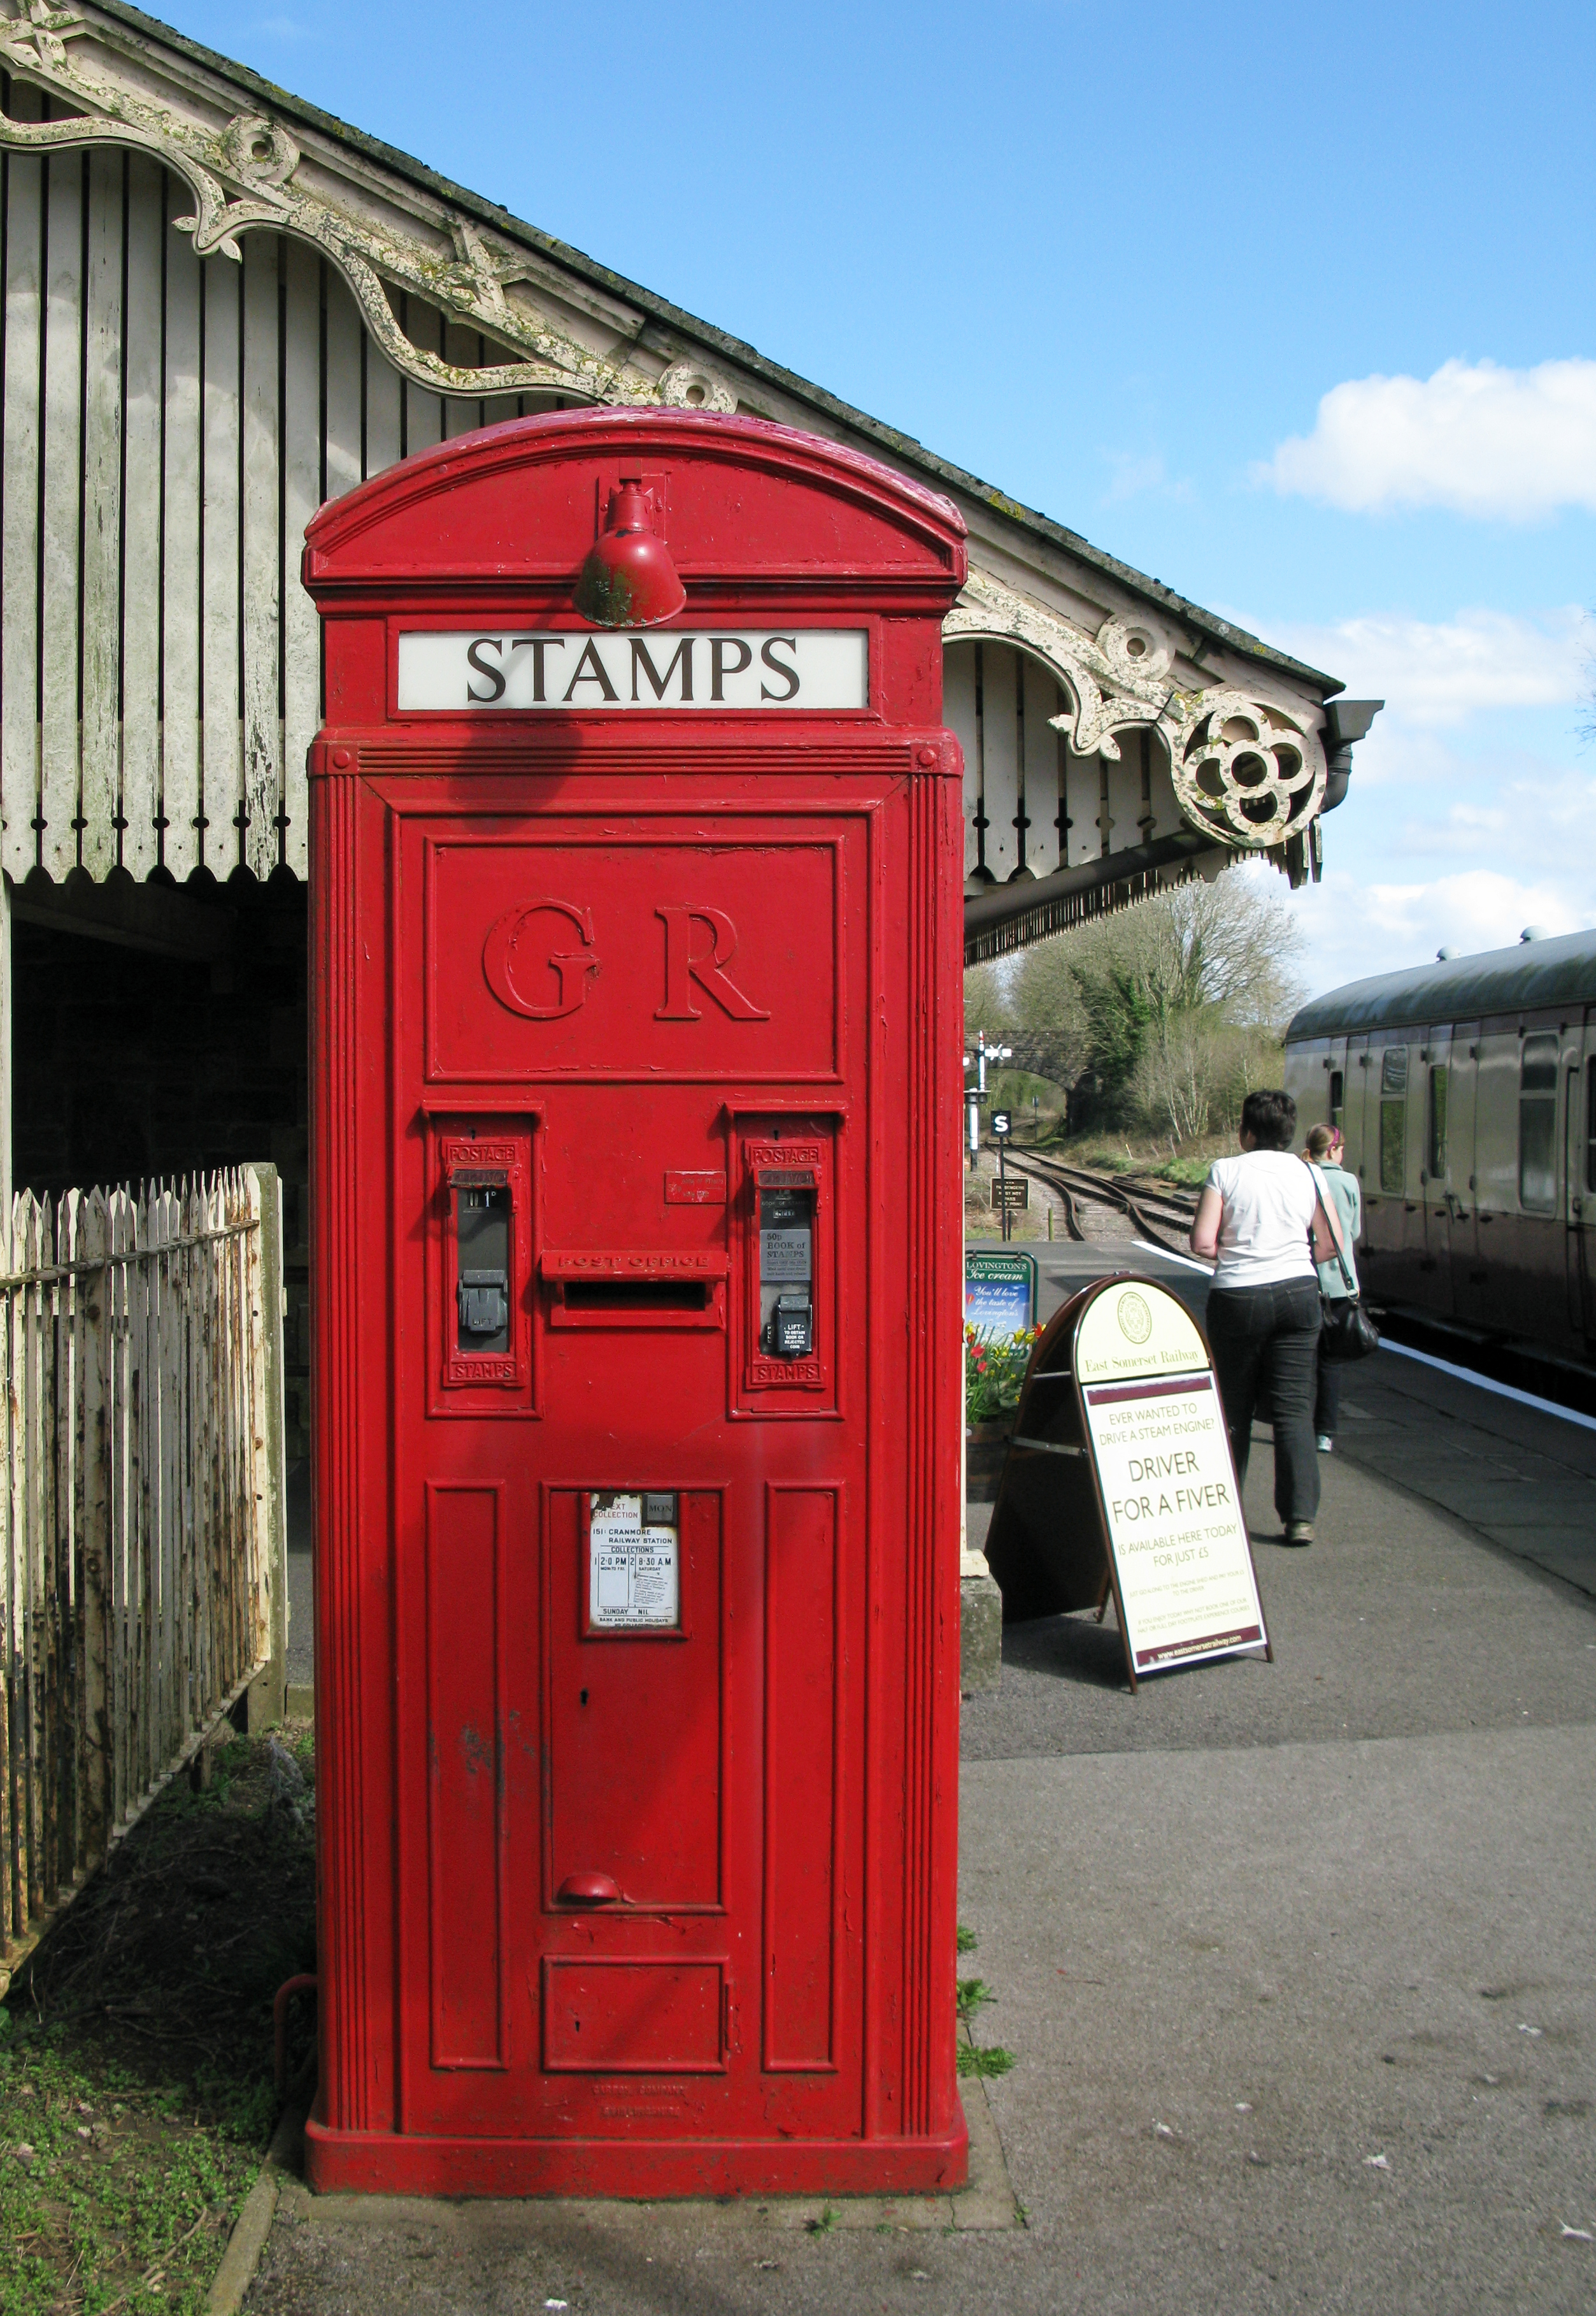 K4 combines a telephone with post box and two stamp vending machines